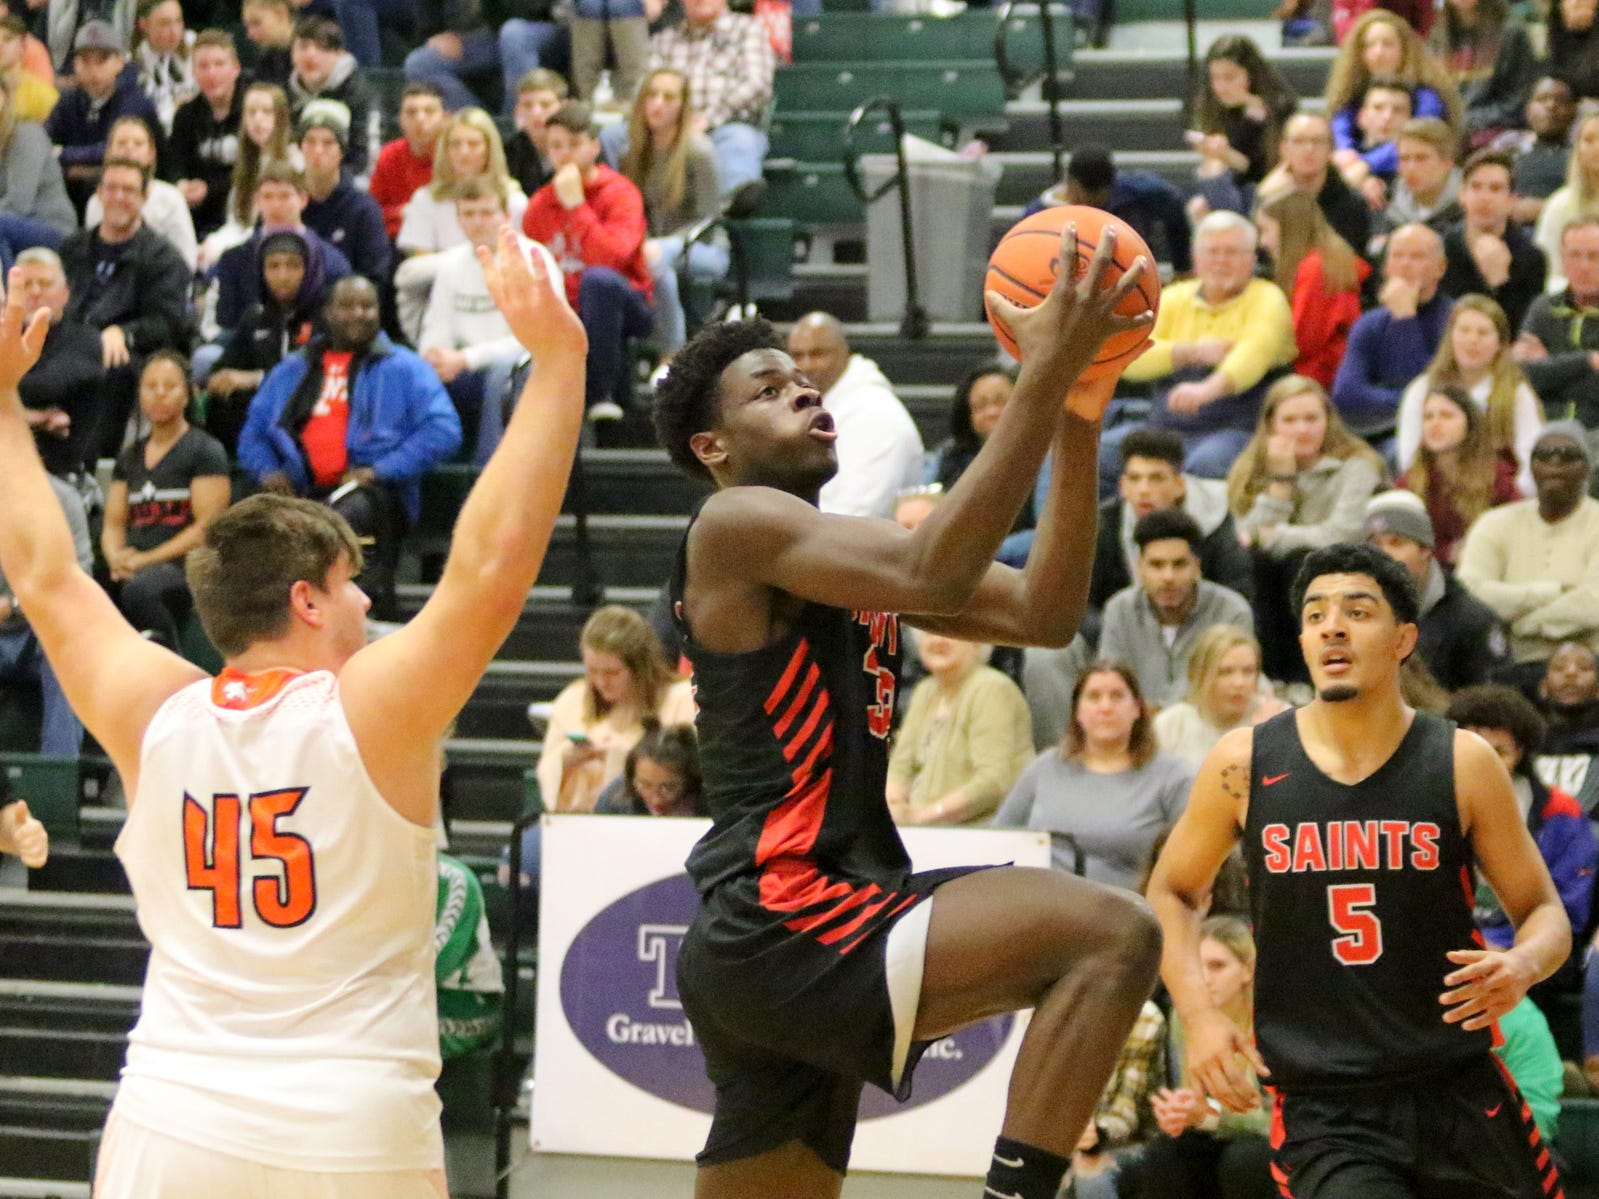 Charles Thompson of St. Stephens/St. Agnes drives in for a layup as Trent Holler defends in the National Division championship game of the Josh Palmer Fund Elmira Holiday Inn Classic on Dec. 30, 2018 at Elmira High School.